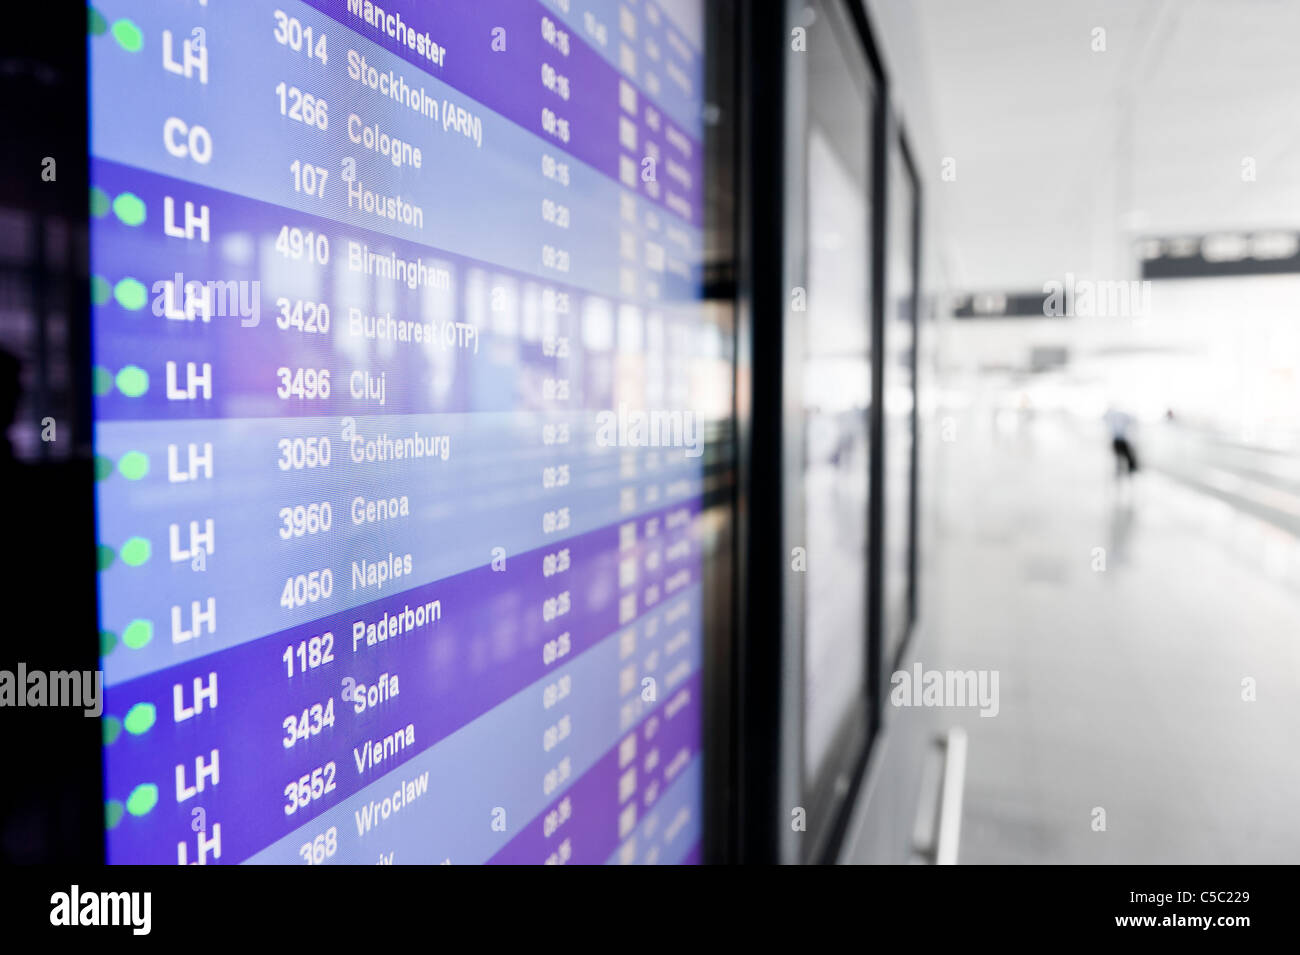 Close-up of an airport arrival and departure timetable - Stock Image